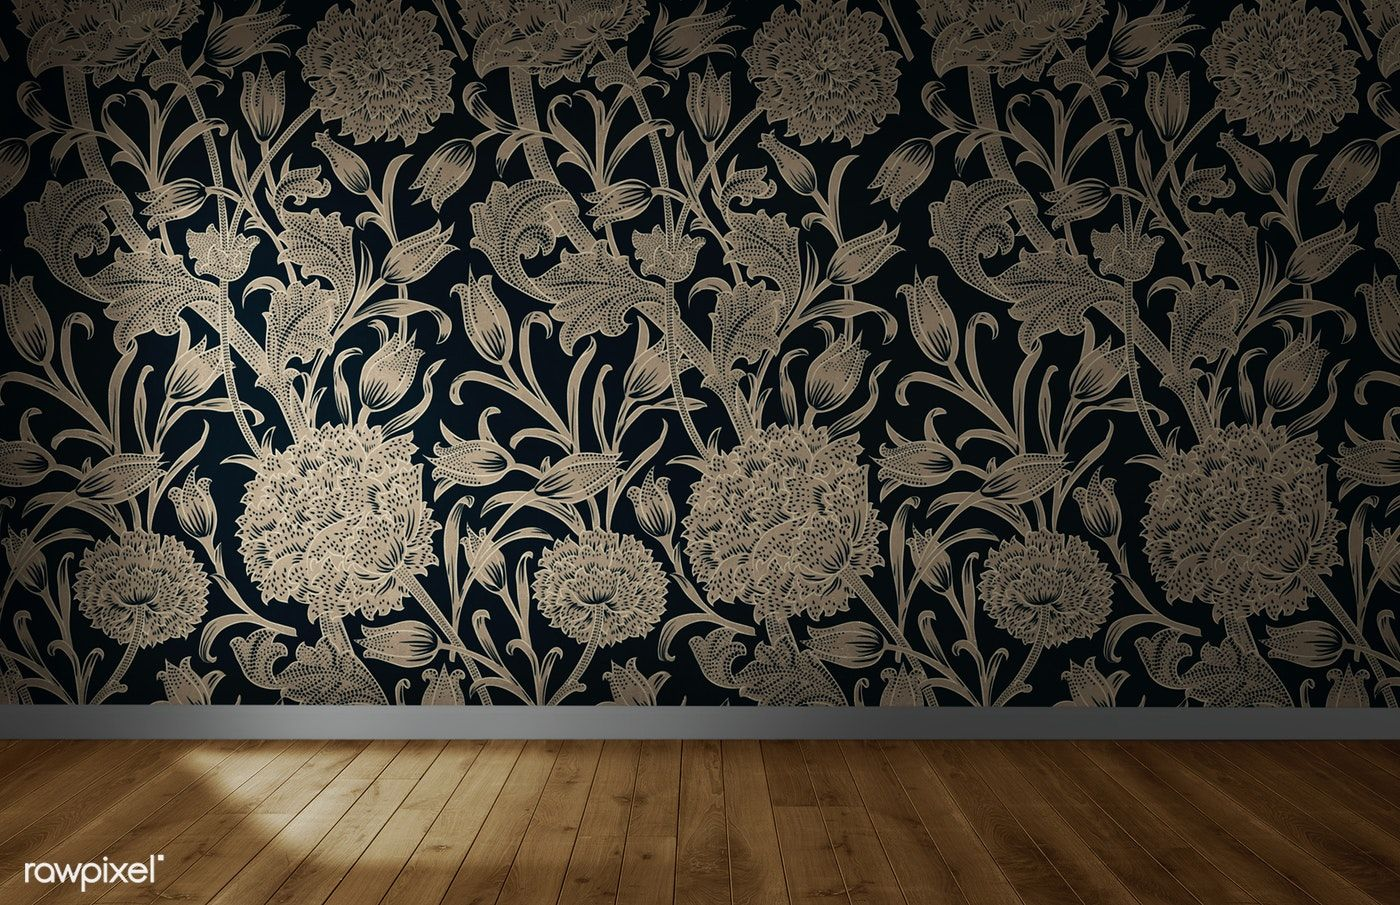 Download premium image of Floral wallpaper in an empty room